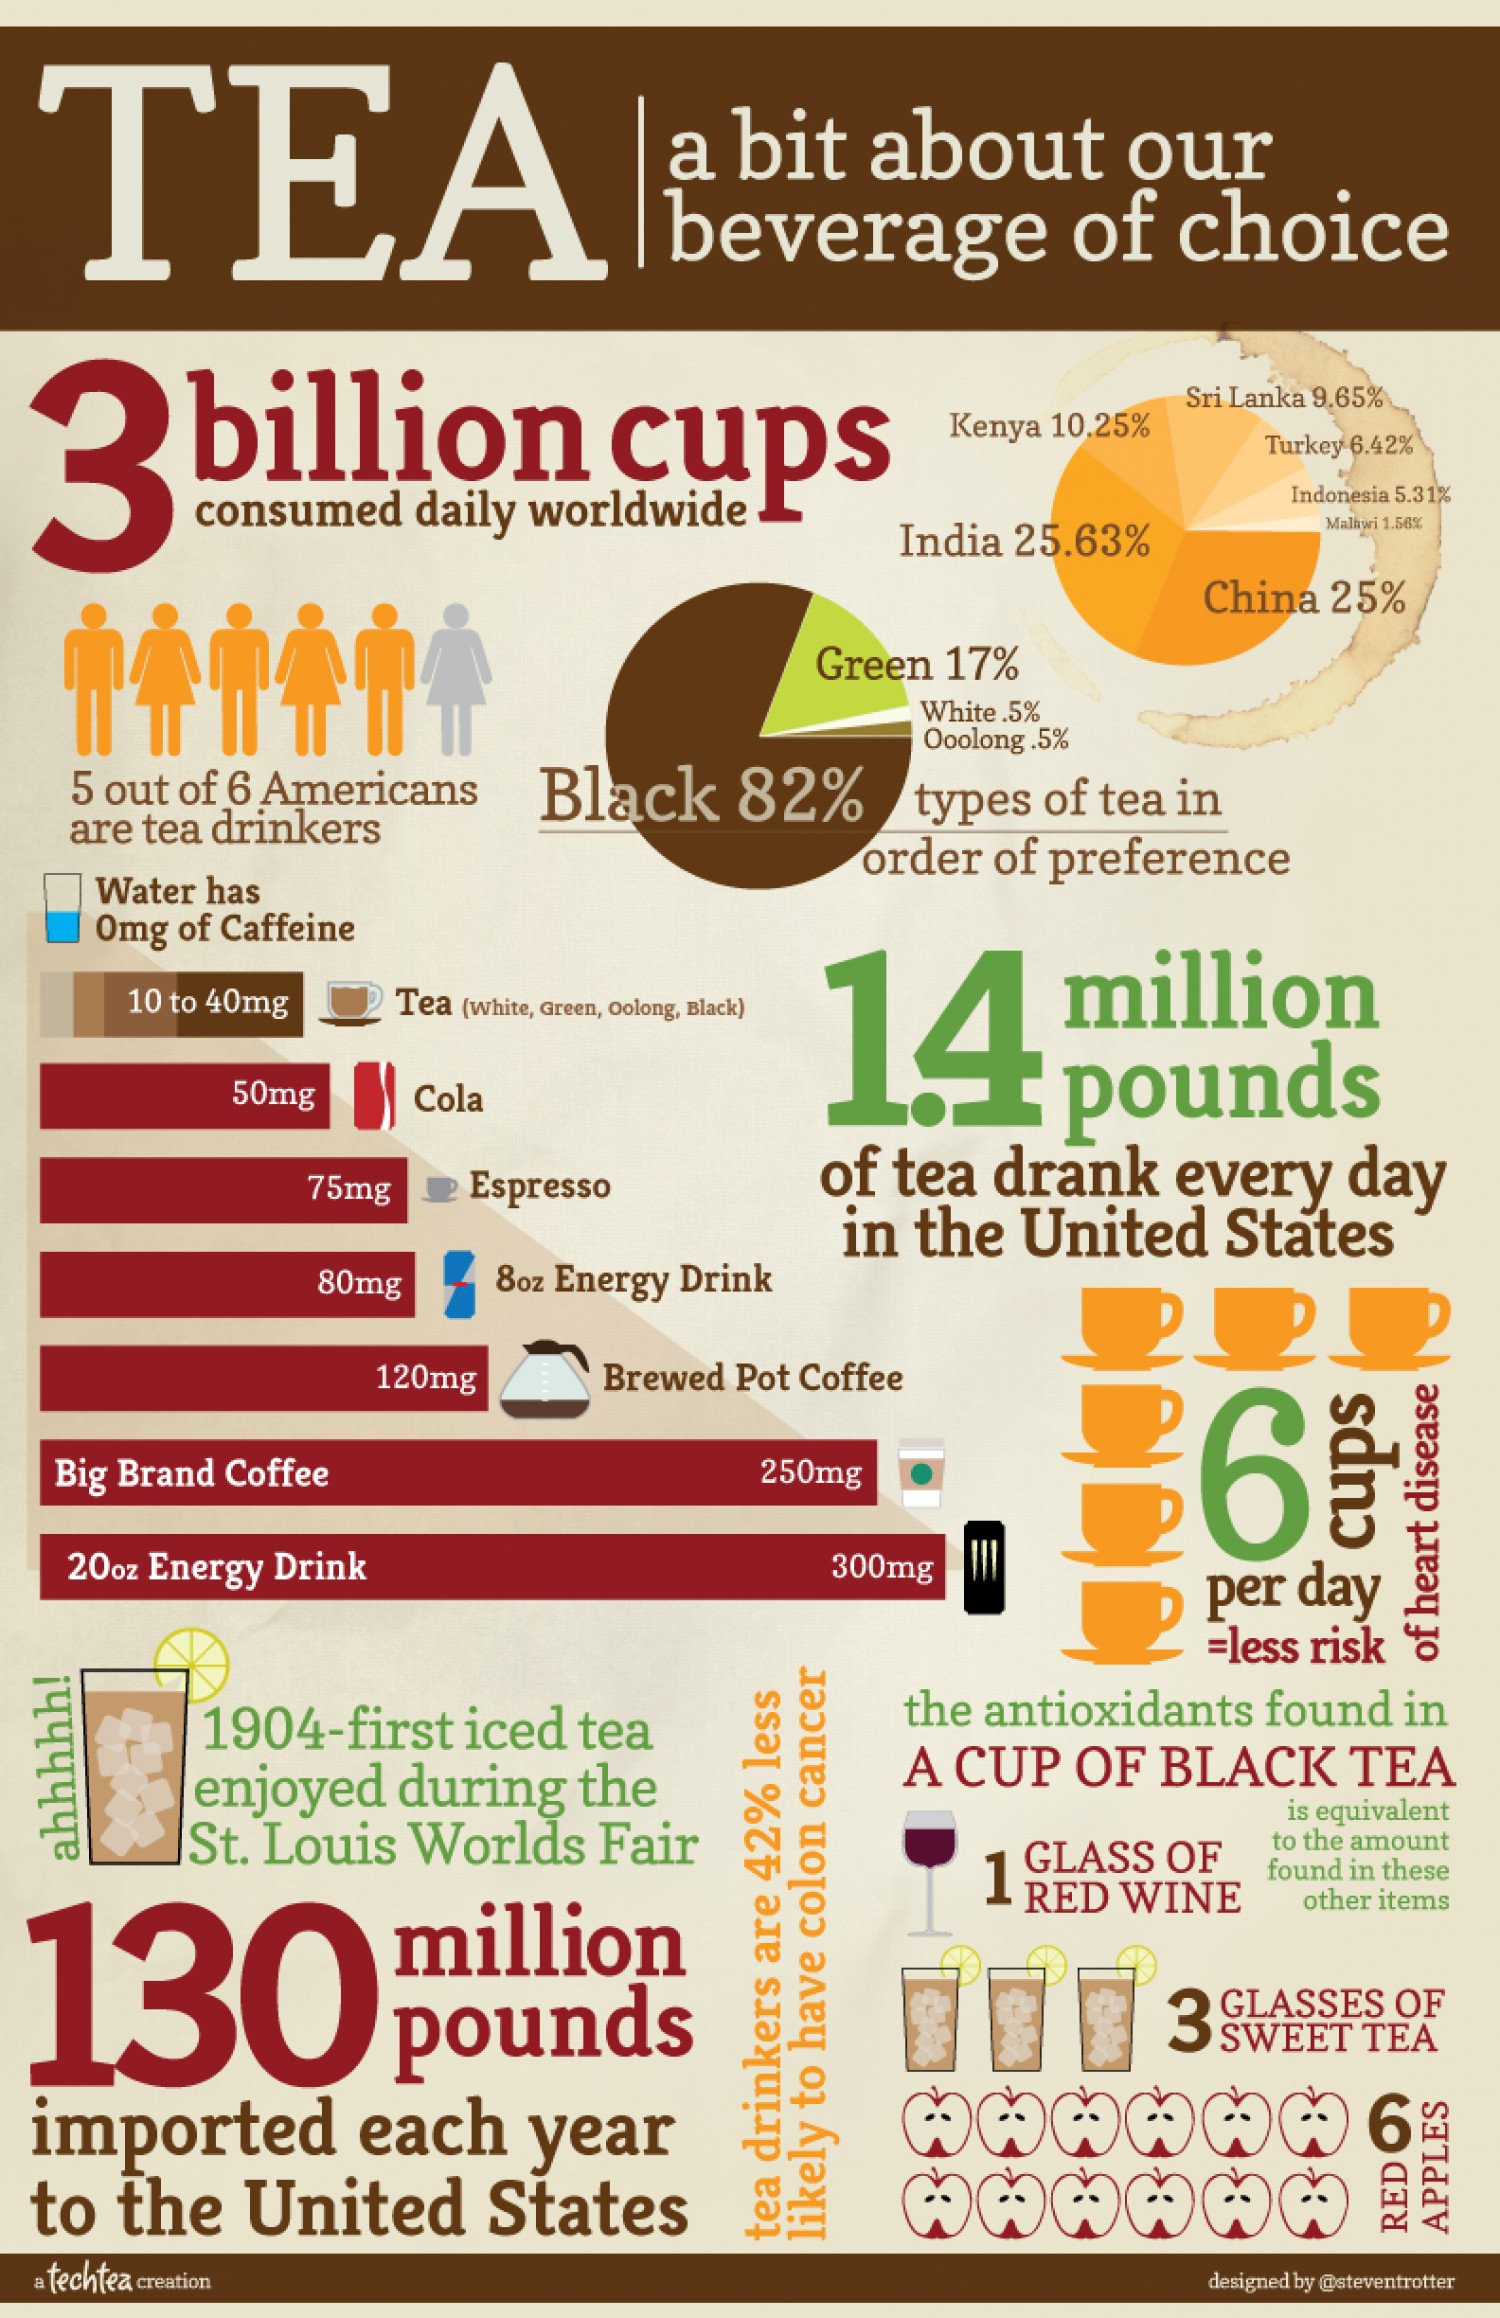 1. Tea A Bit about Our Beverage of Choice